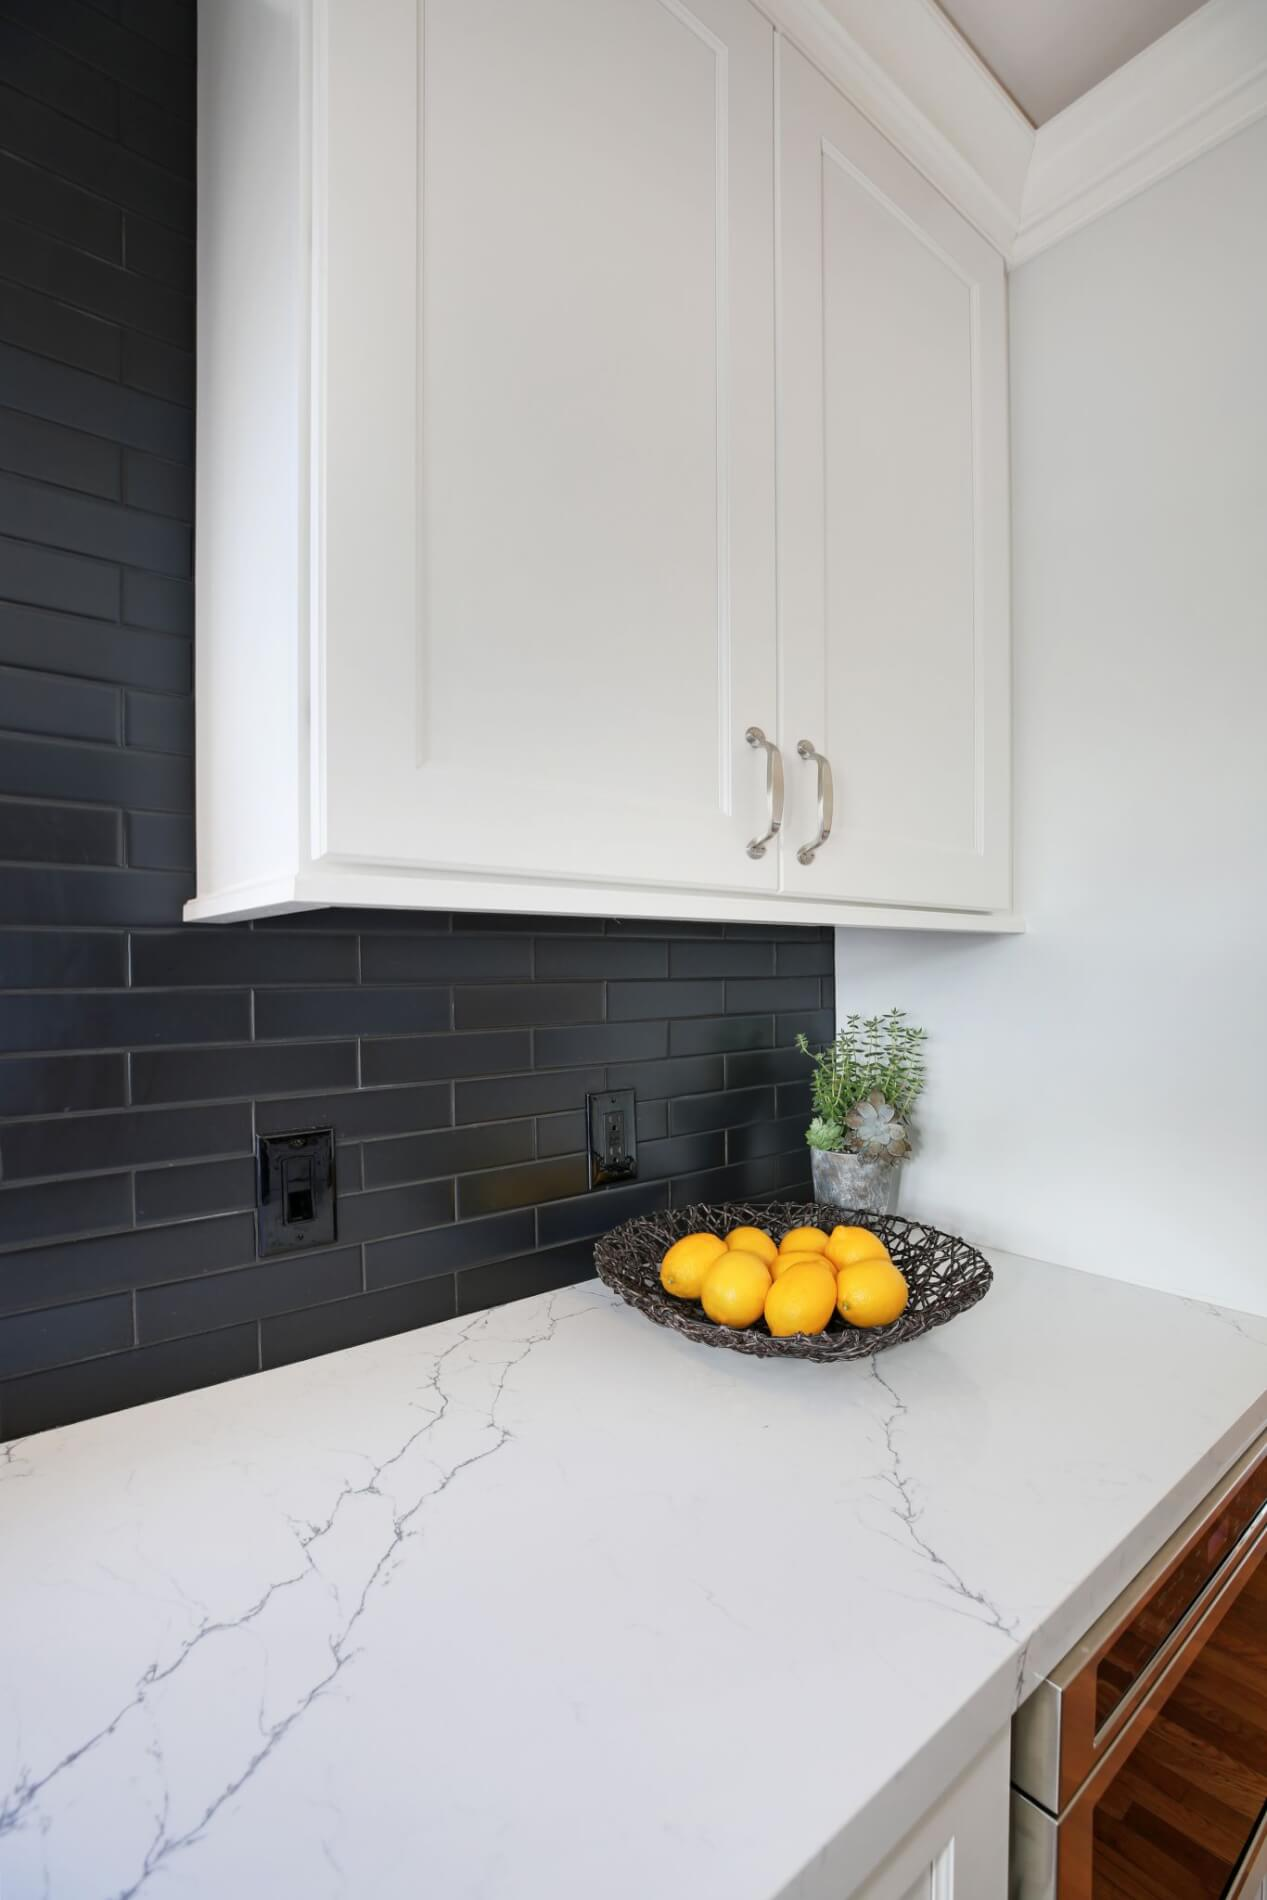 white kitchen cabinets and countertop with black backsplash